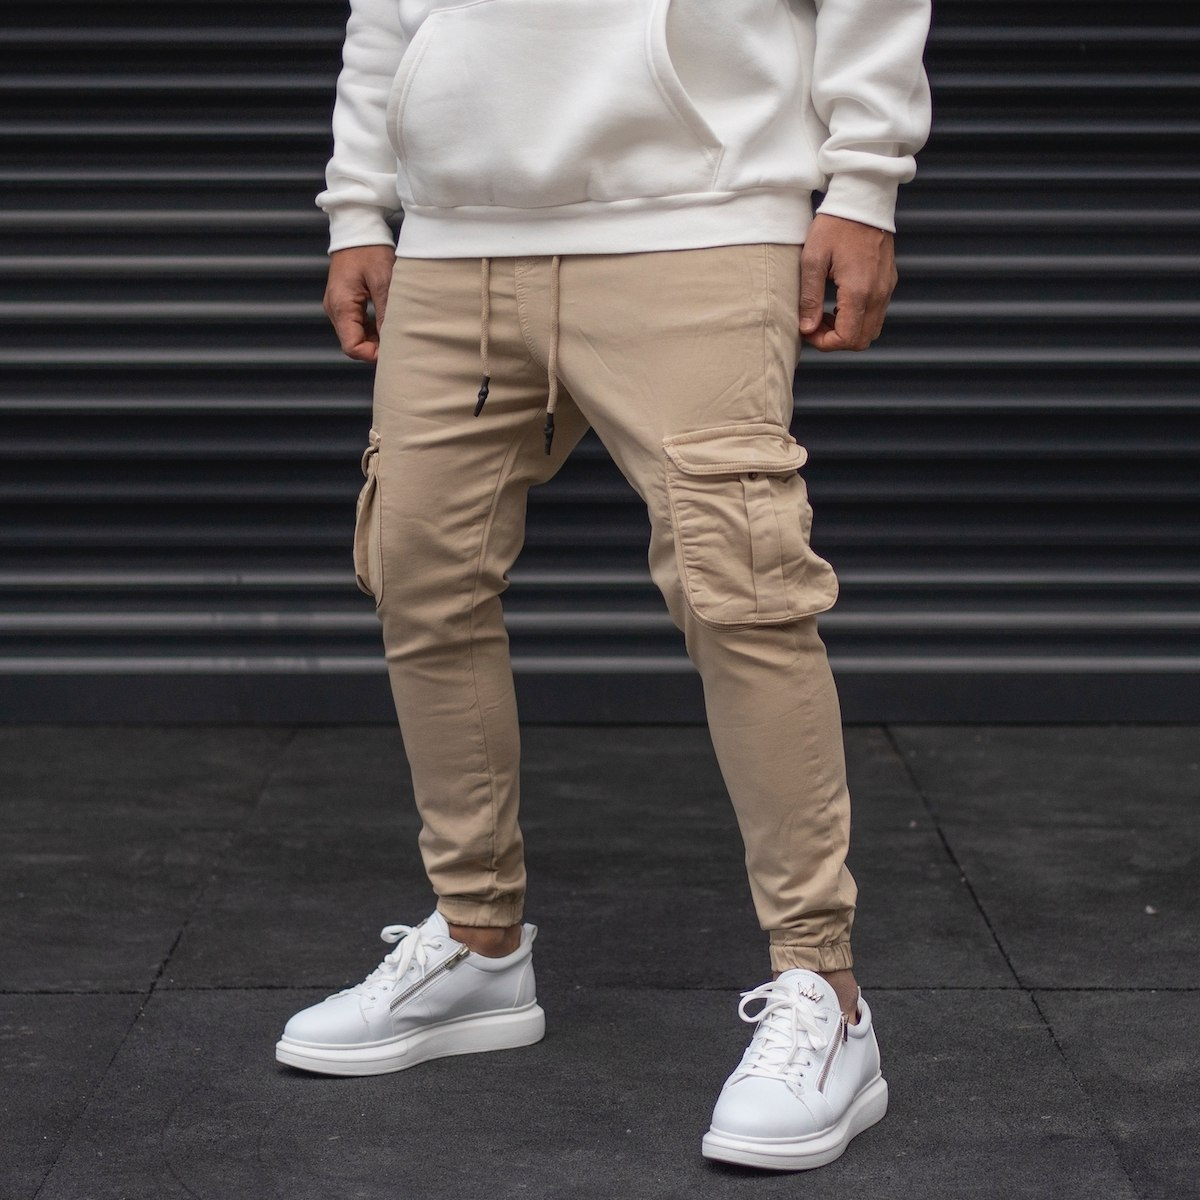 Men's Cargo Joggers With Pockets In Beige